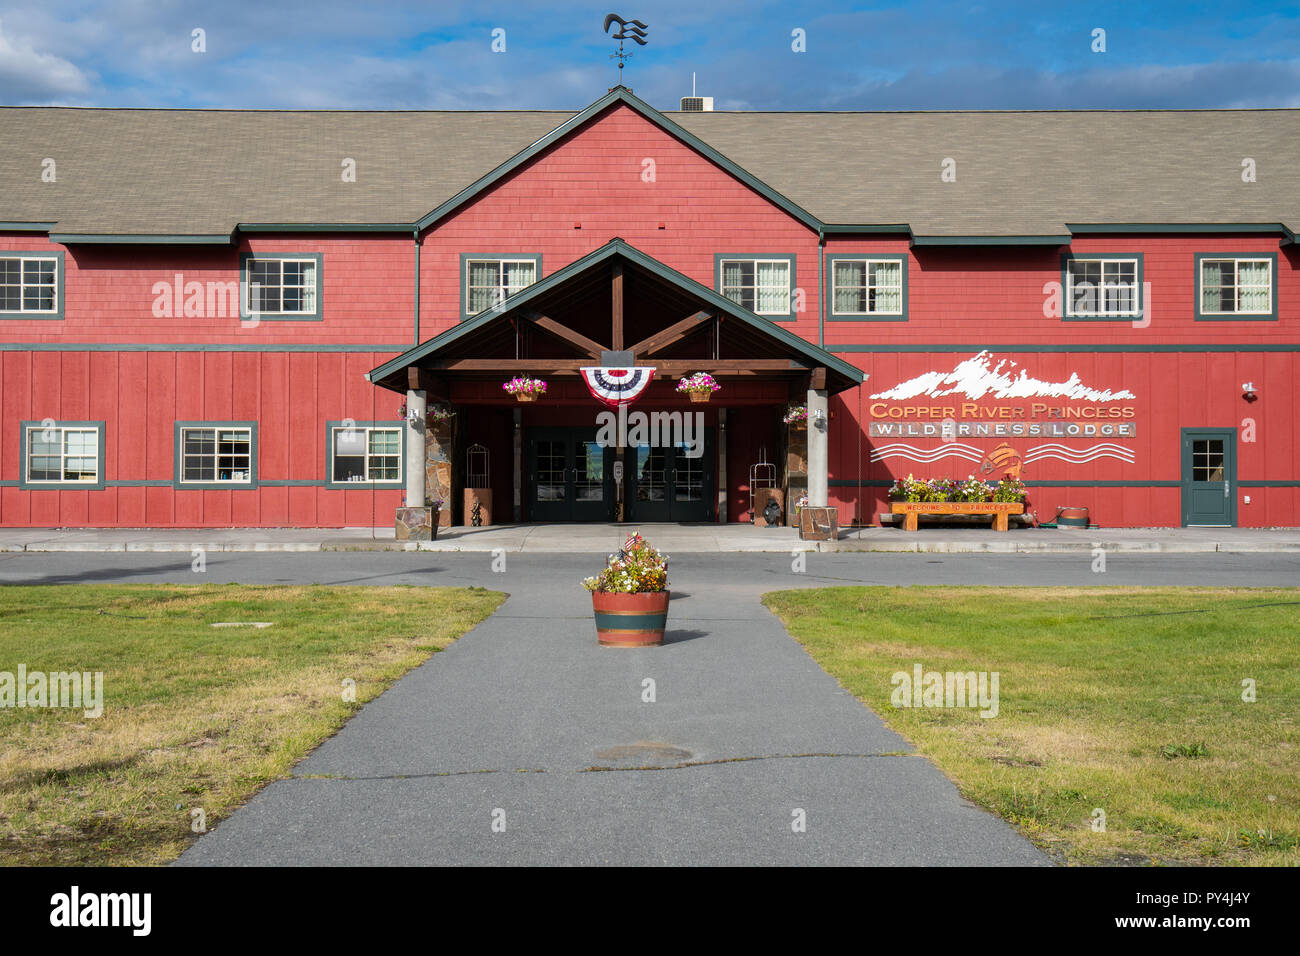 AUGUST 9 2018 - COPPER RIVER, ALASKA: Copper River Princess Lodge is operated by Princess Cruise Lines and is an official hotel and lodging area for t - Stock Image